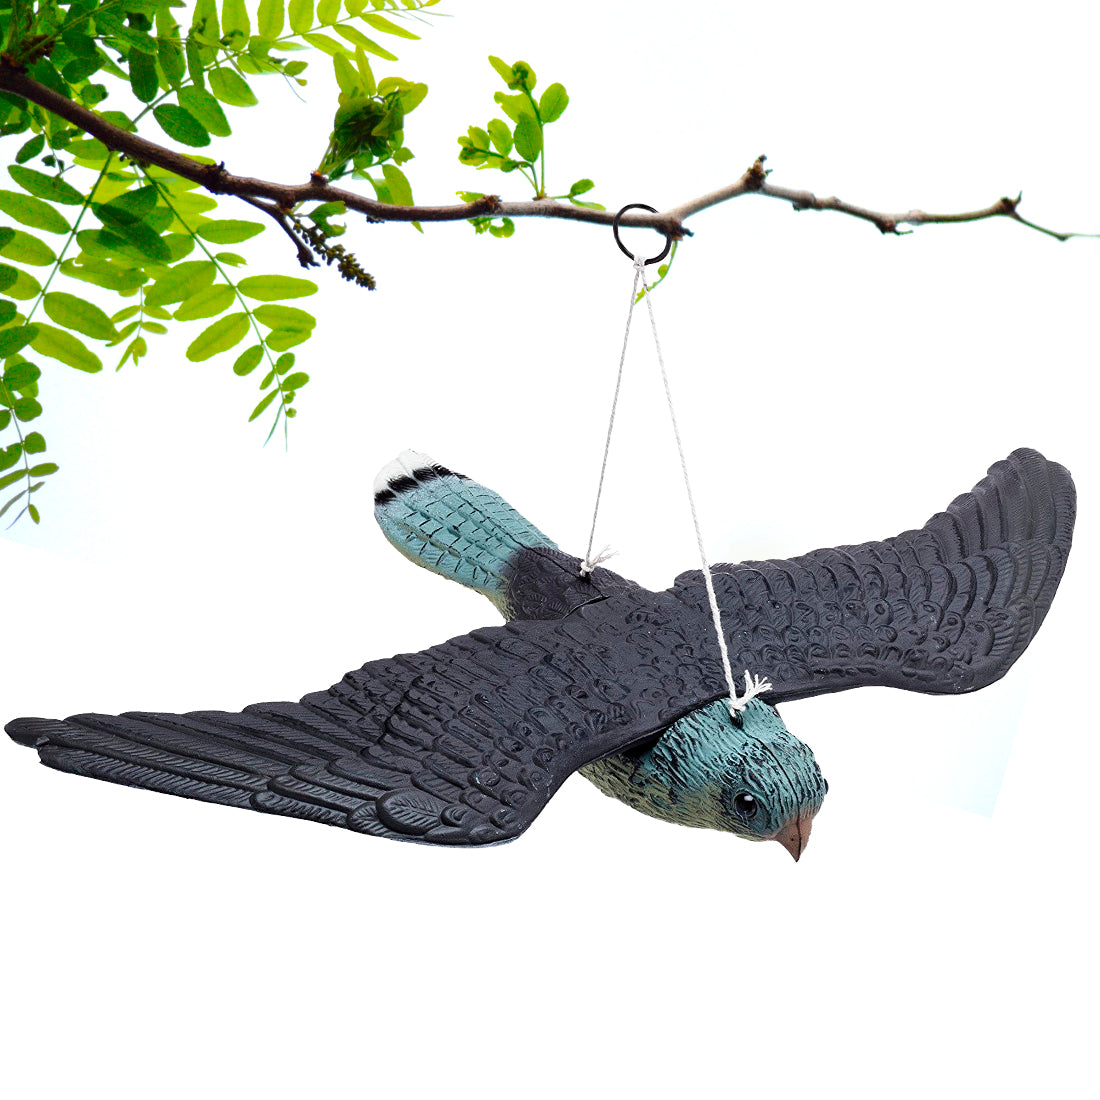 Bird Repellent Fake Flying Hawk Decoy - Perfect for Home and Garden